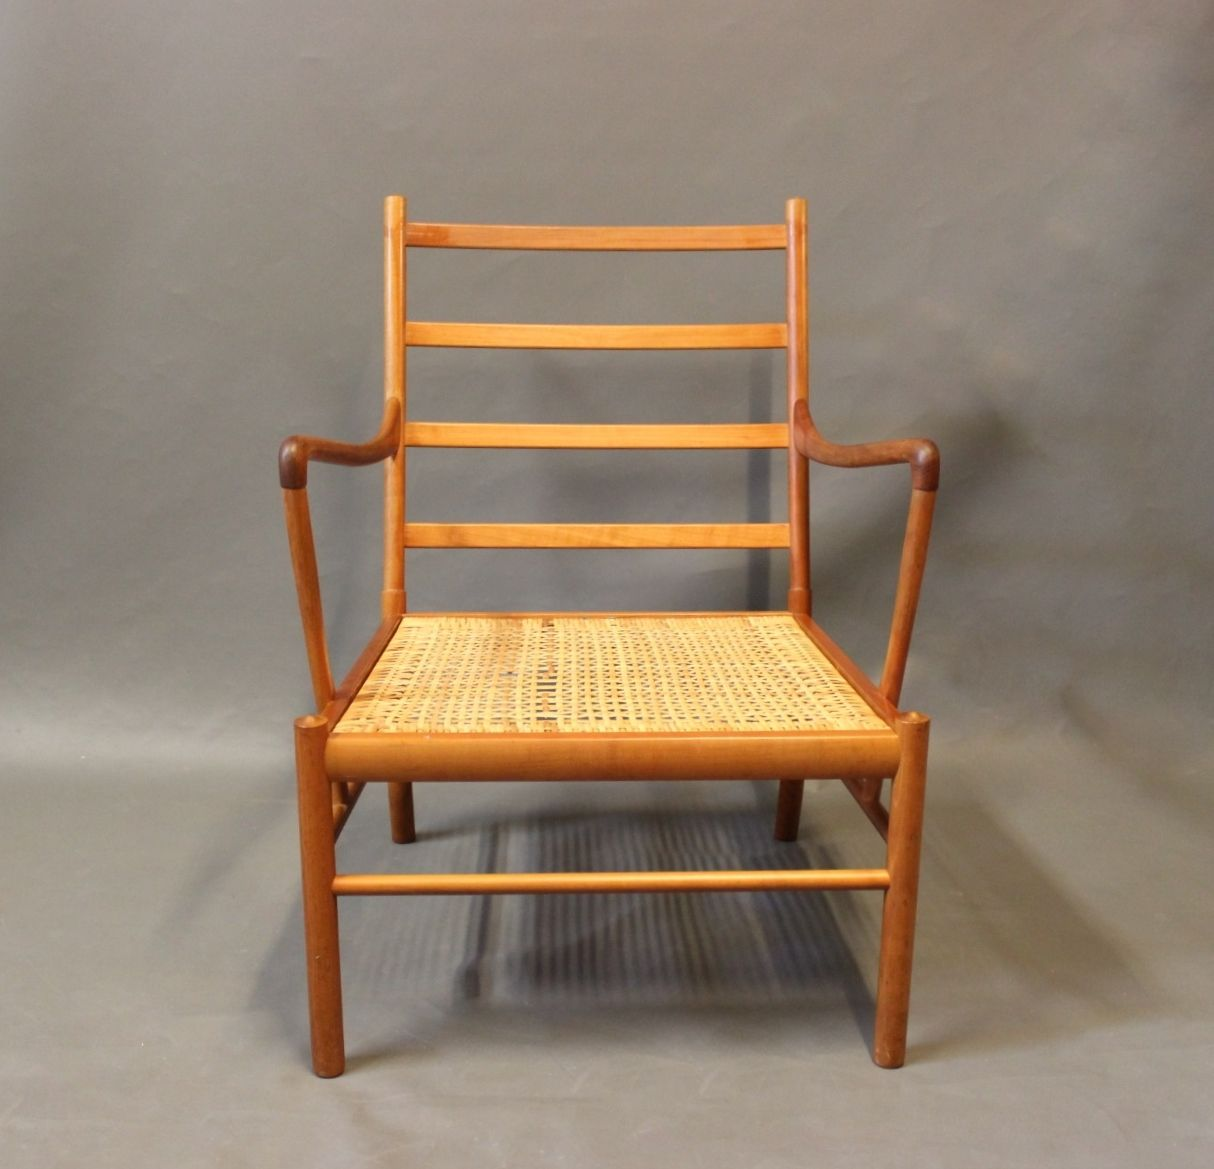 Colonial Chair Vintage Model Pj149 Colonial Chair By Ole Wanscher For P